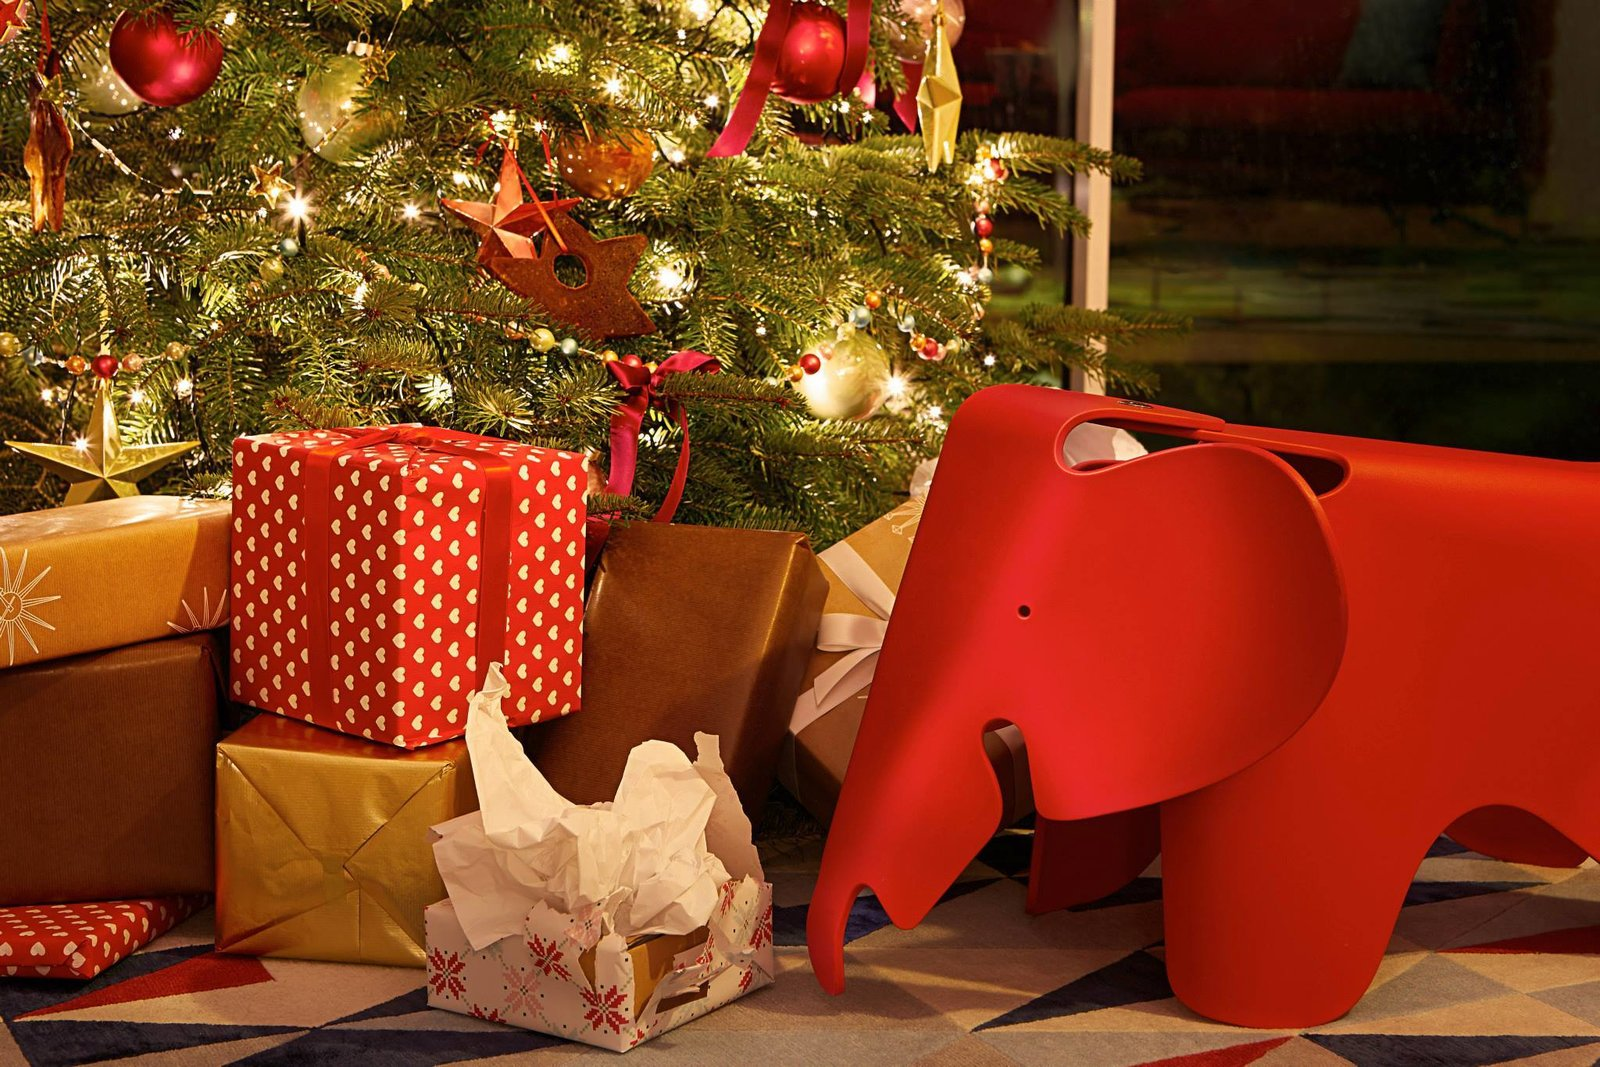 Eames Holiday Gift Guide